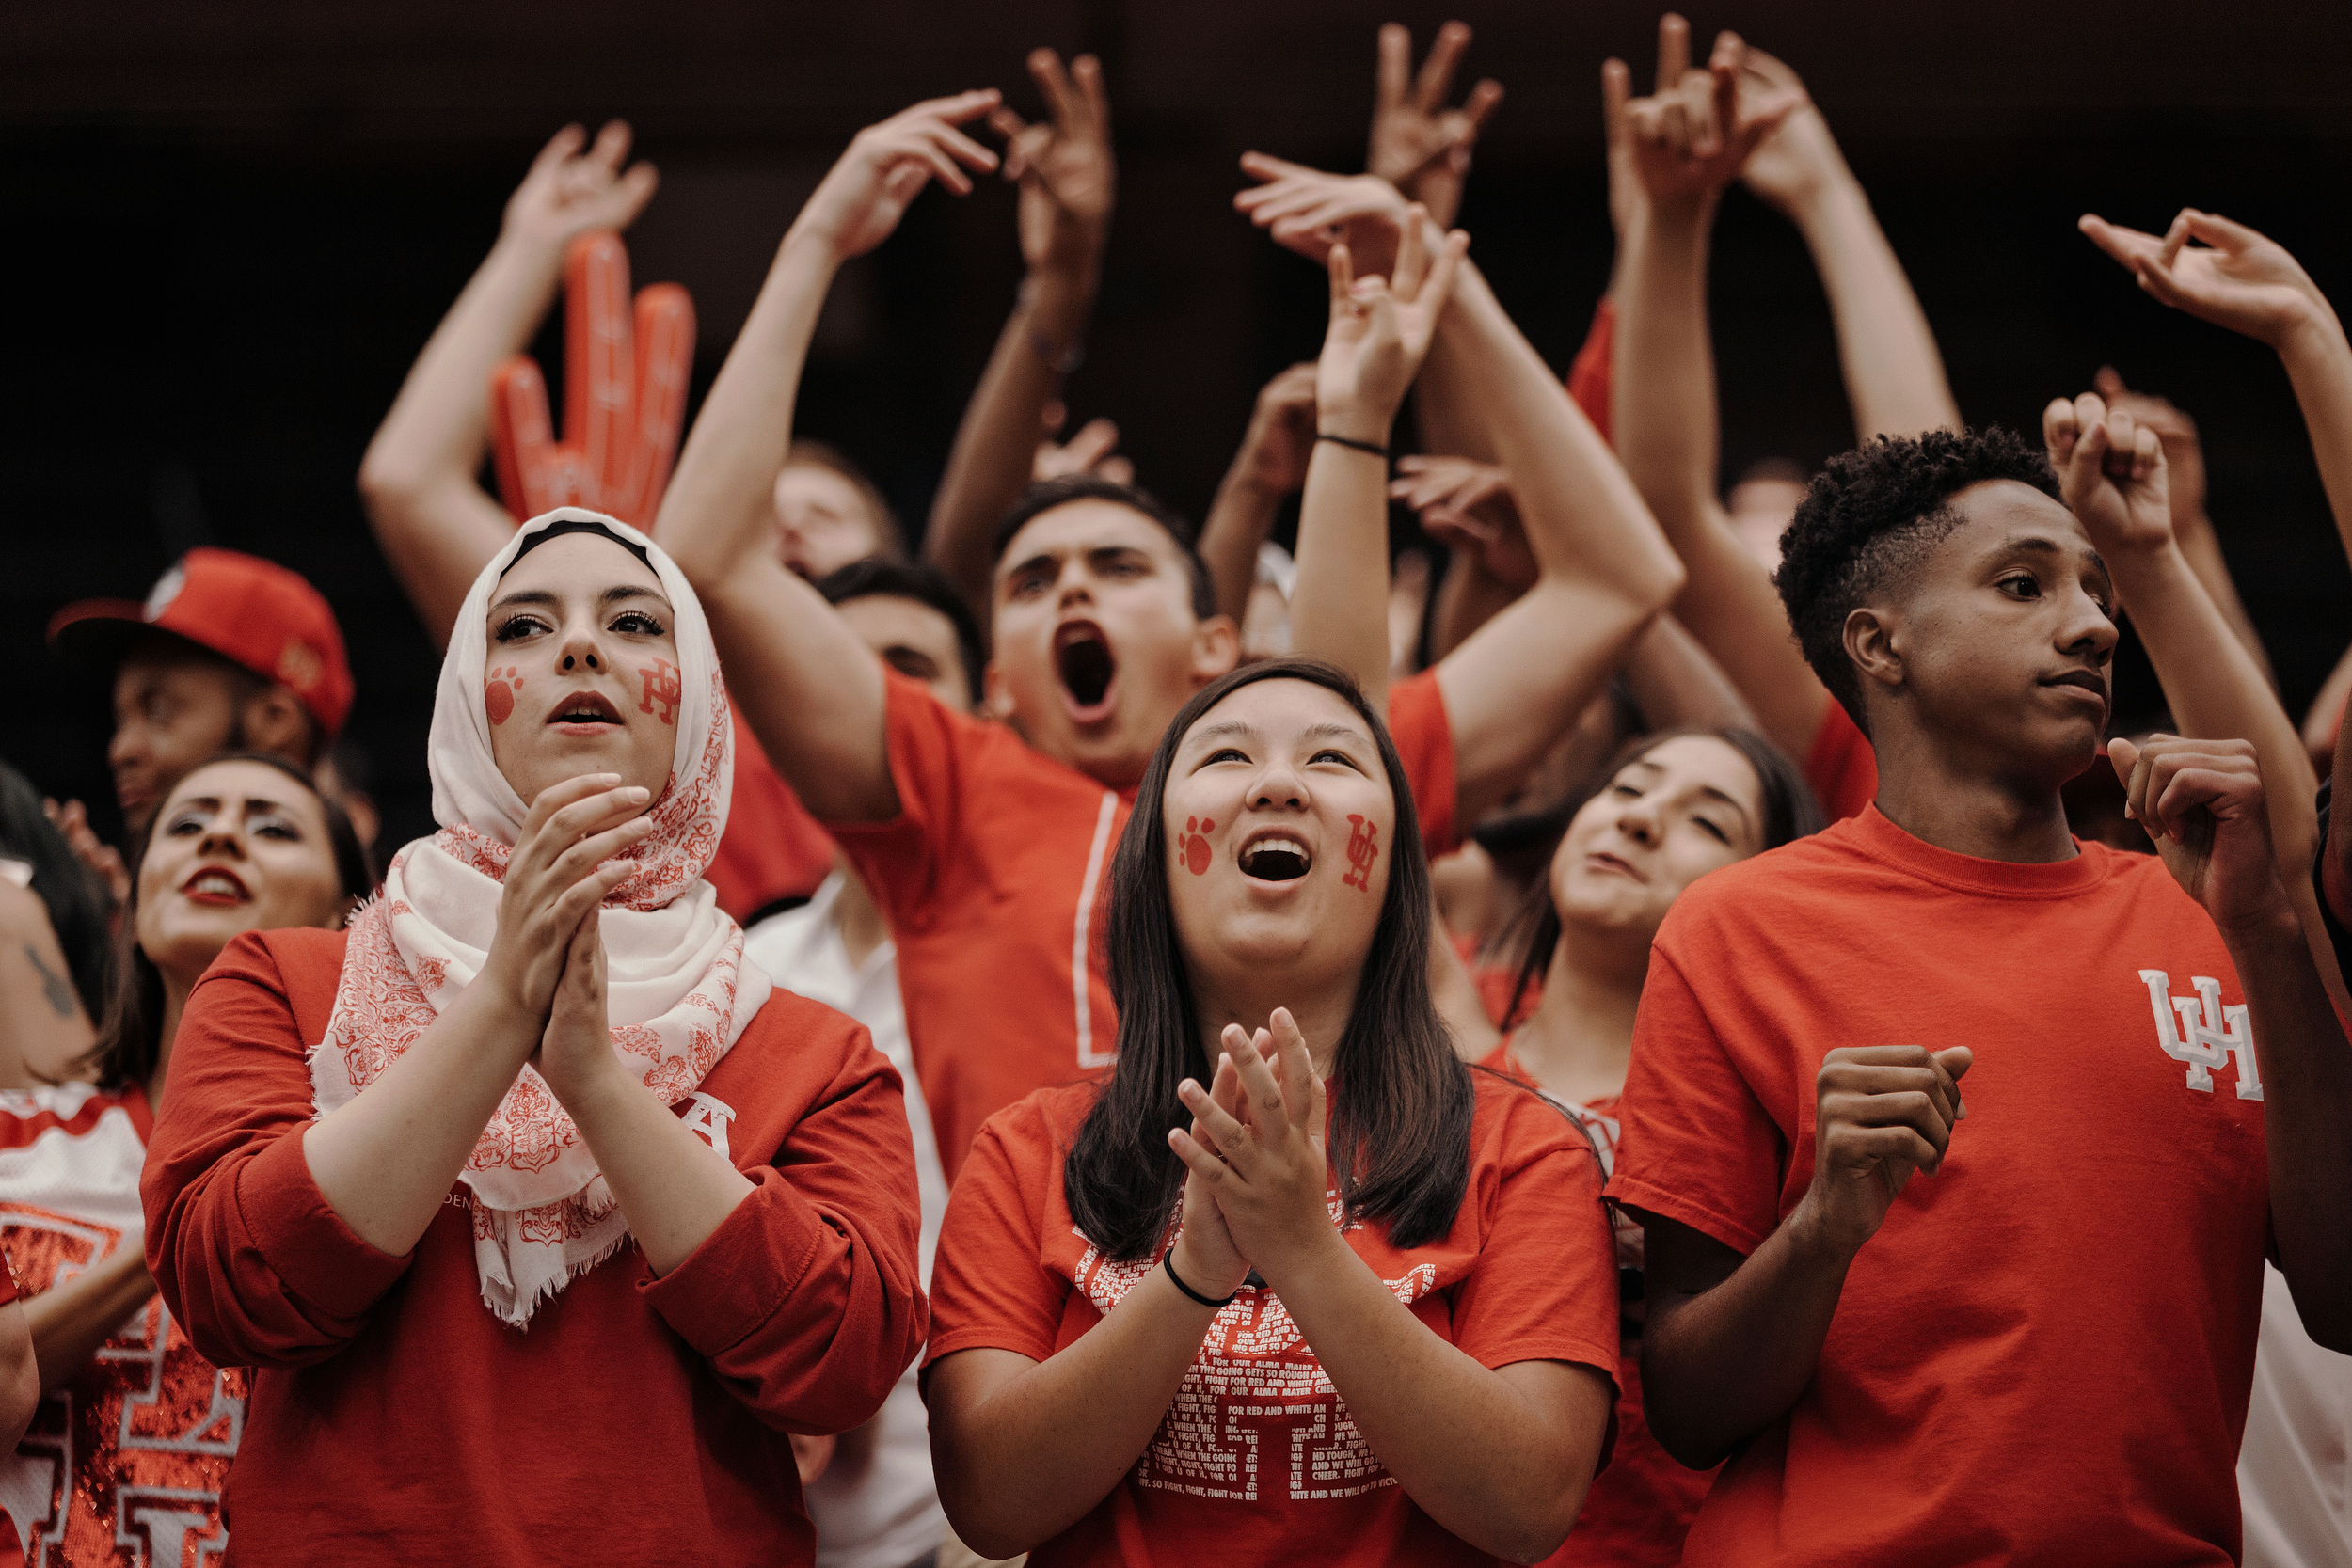 University of Houston fans cheer on their team from the sidelines. Todd Spoth for The New York Times.